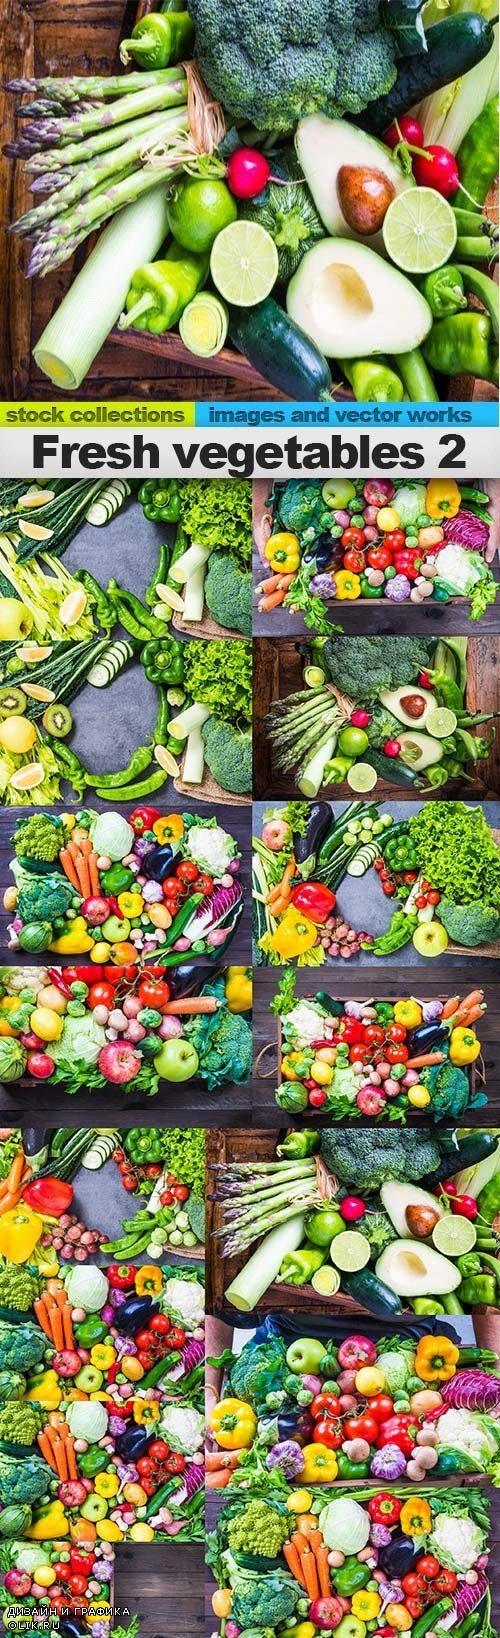 Fresh vegetables 2, 15 x UHQ JPEG